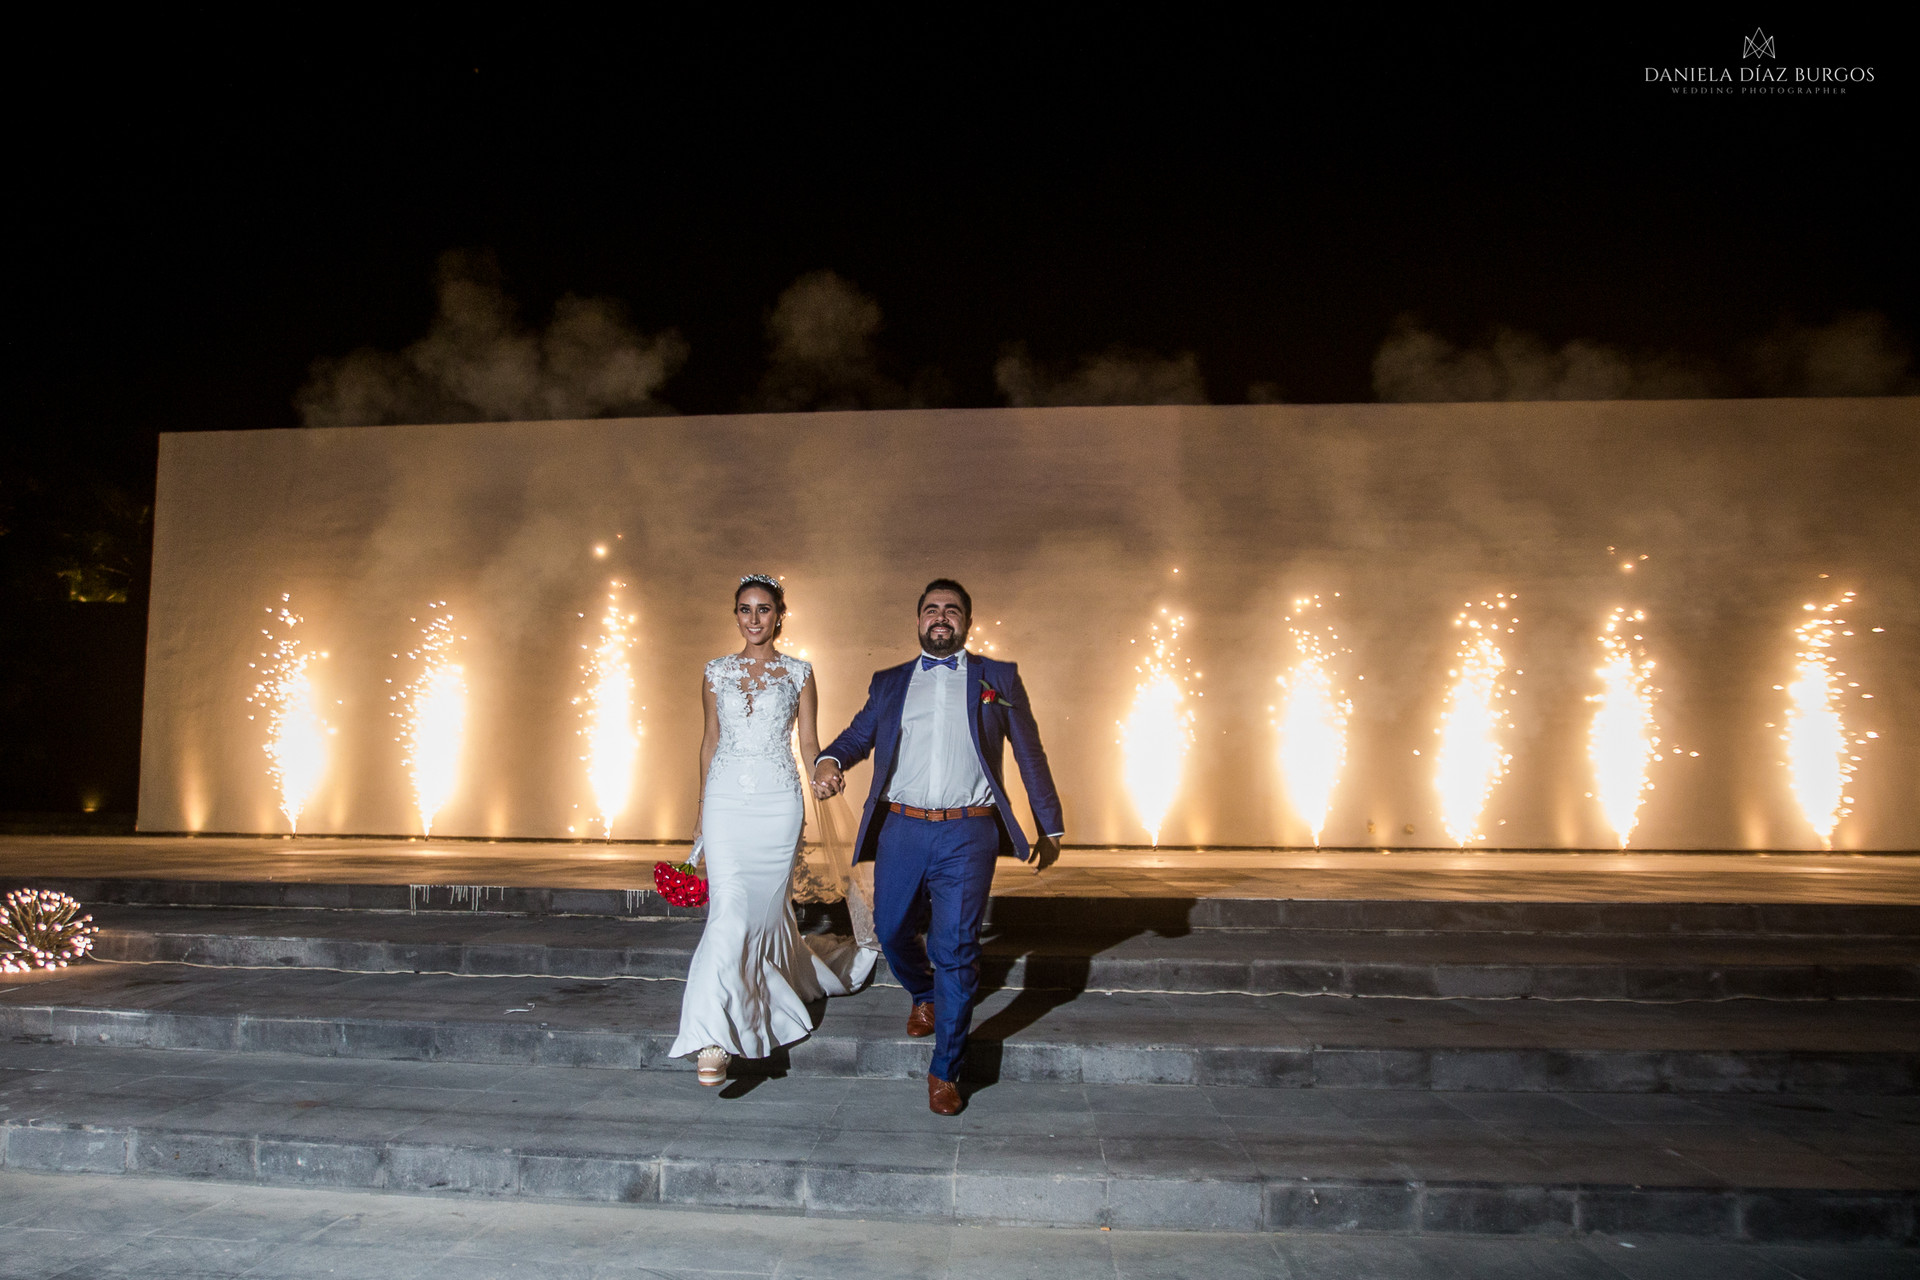 Zuza+Sergio-Wedding-LD-365.jpg